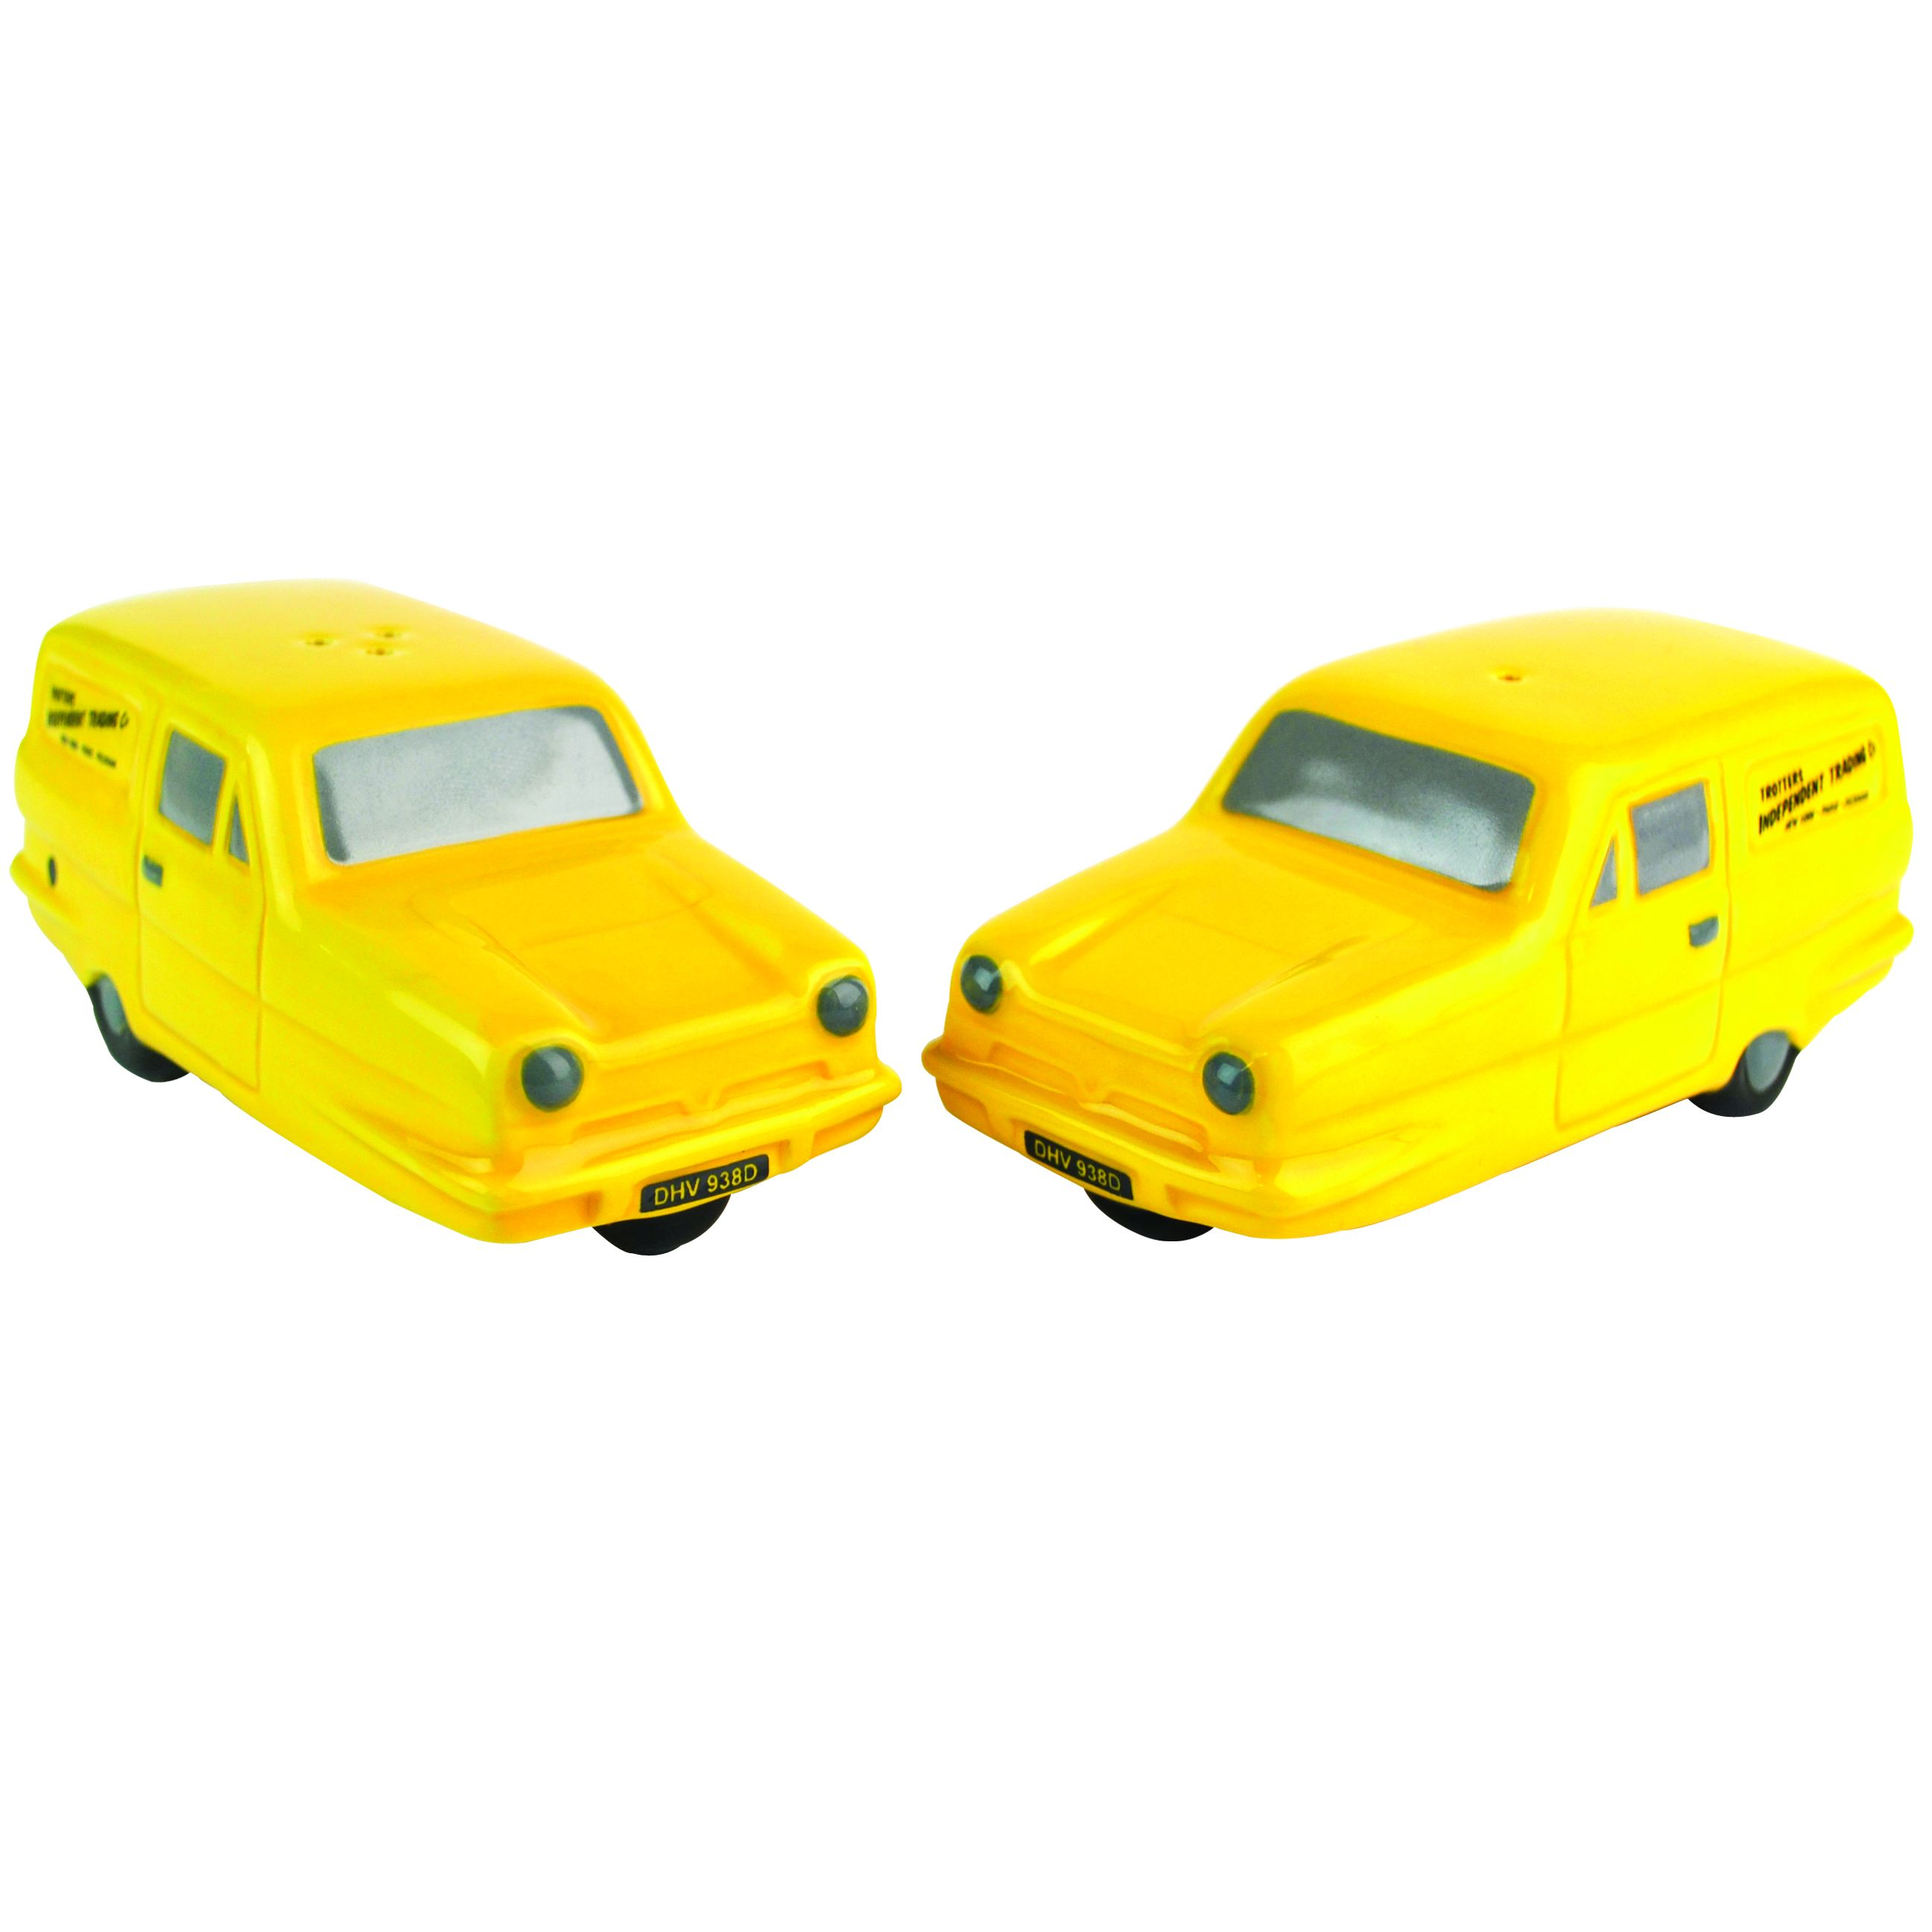 Only Fools and Horses Reliant Robin Salt and Pepper Shakers   Menkind